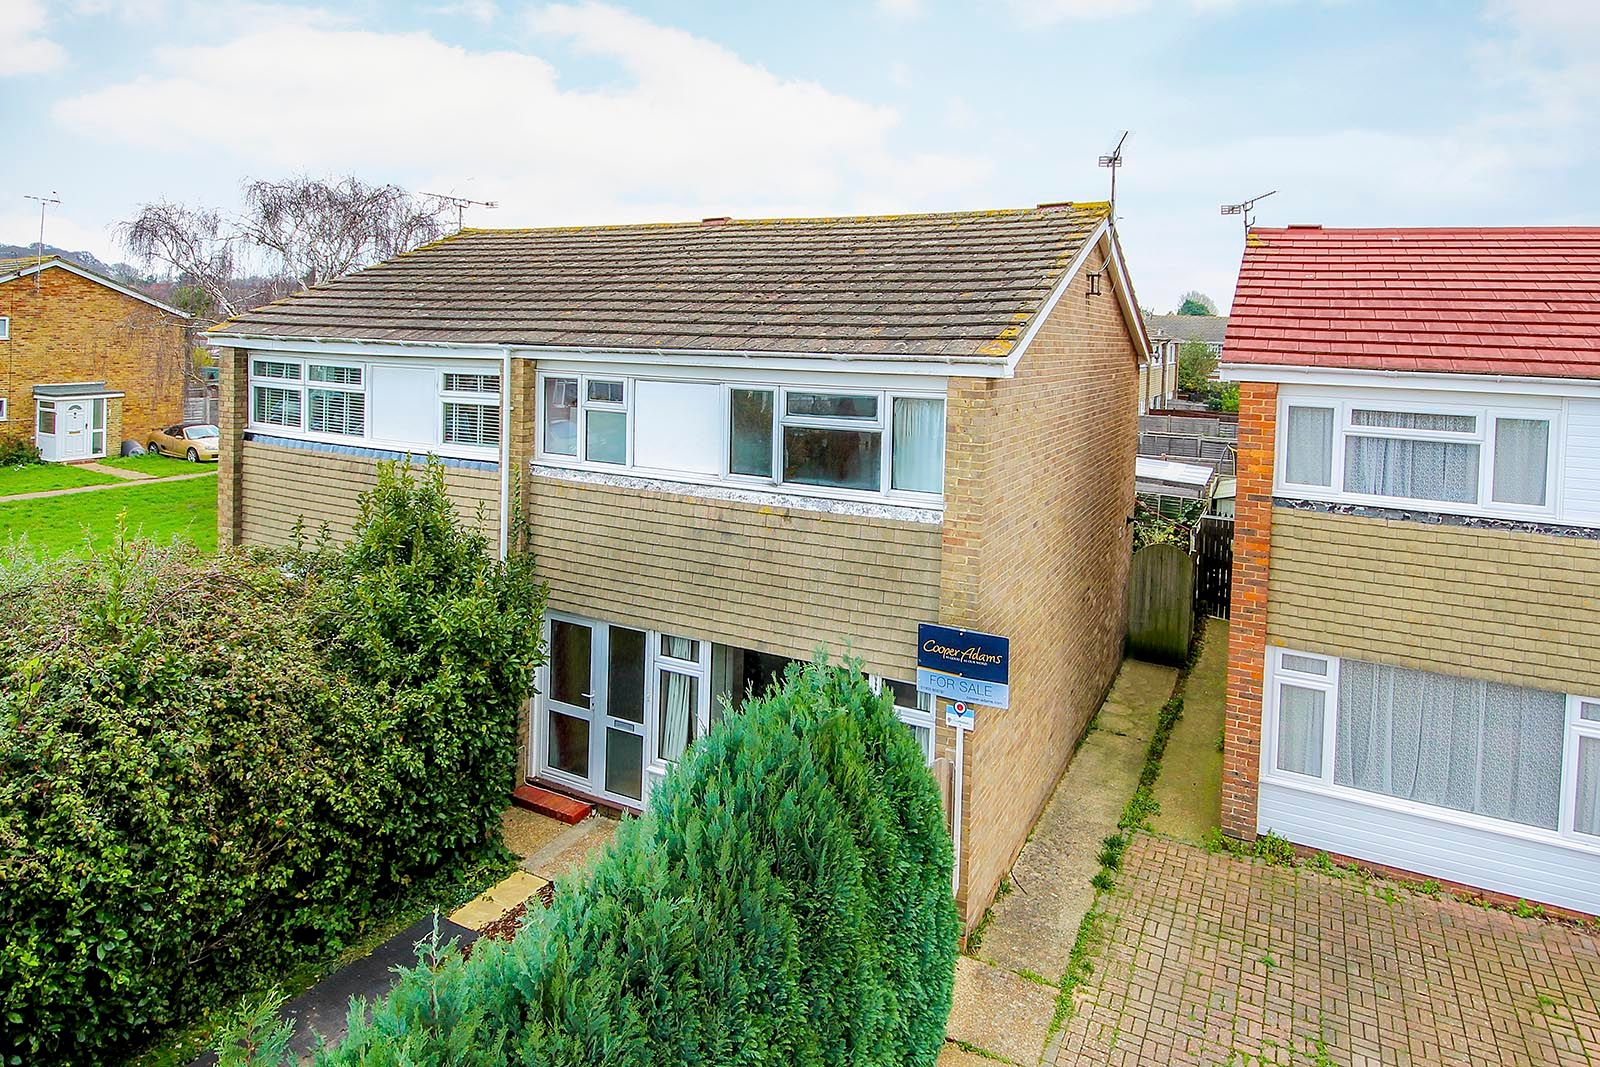 3 bed house for sale in Meadowside  - Property Image 1